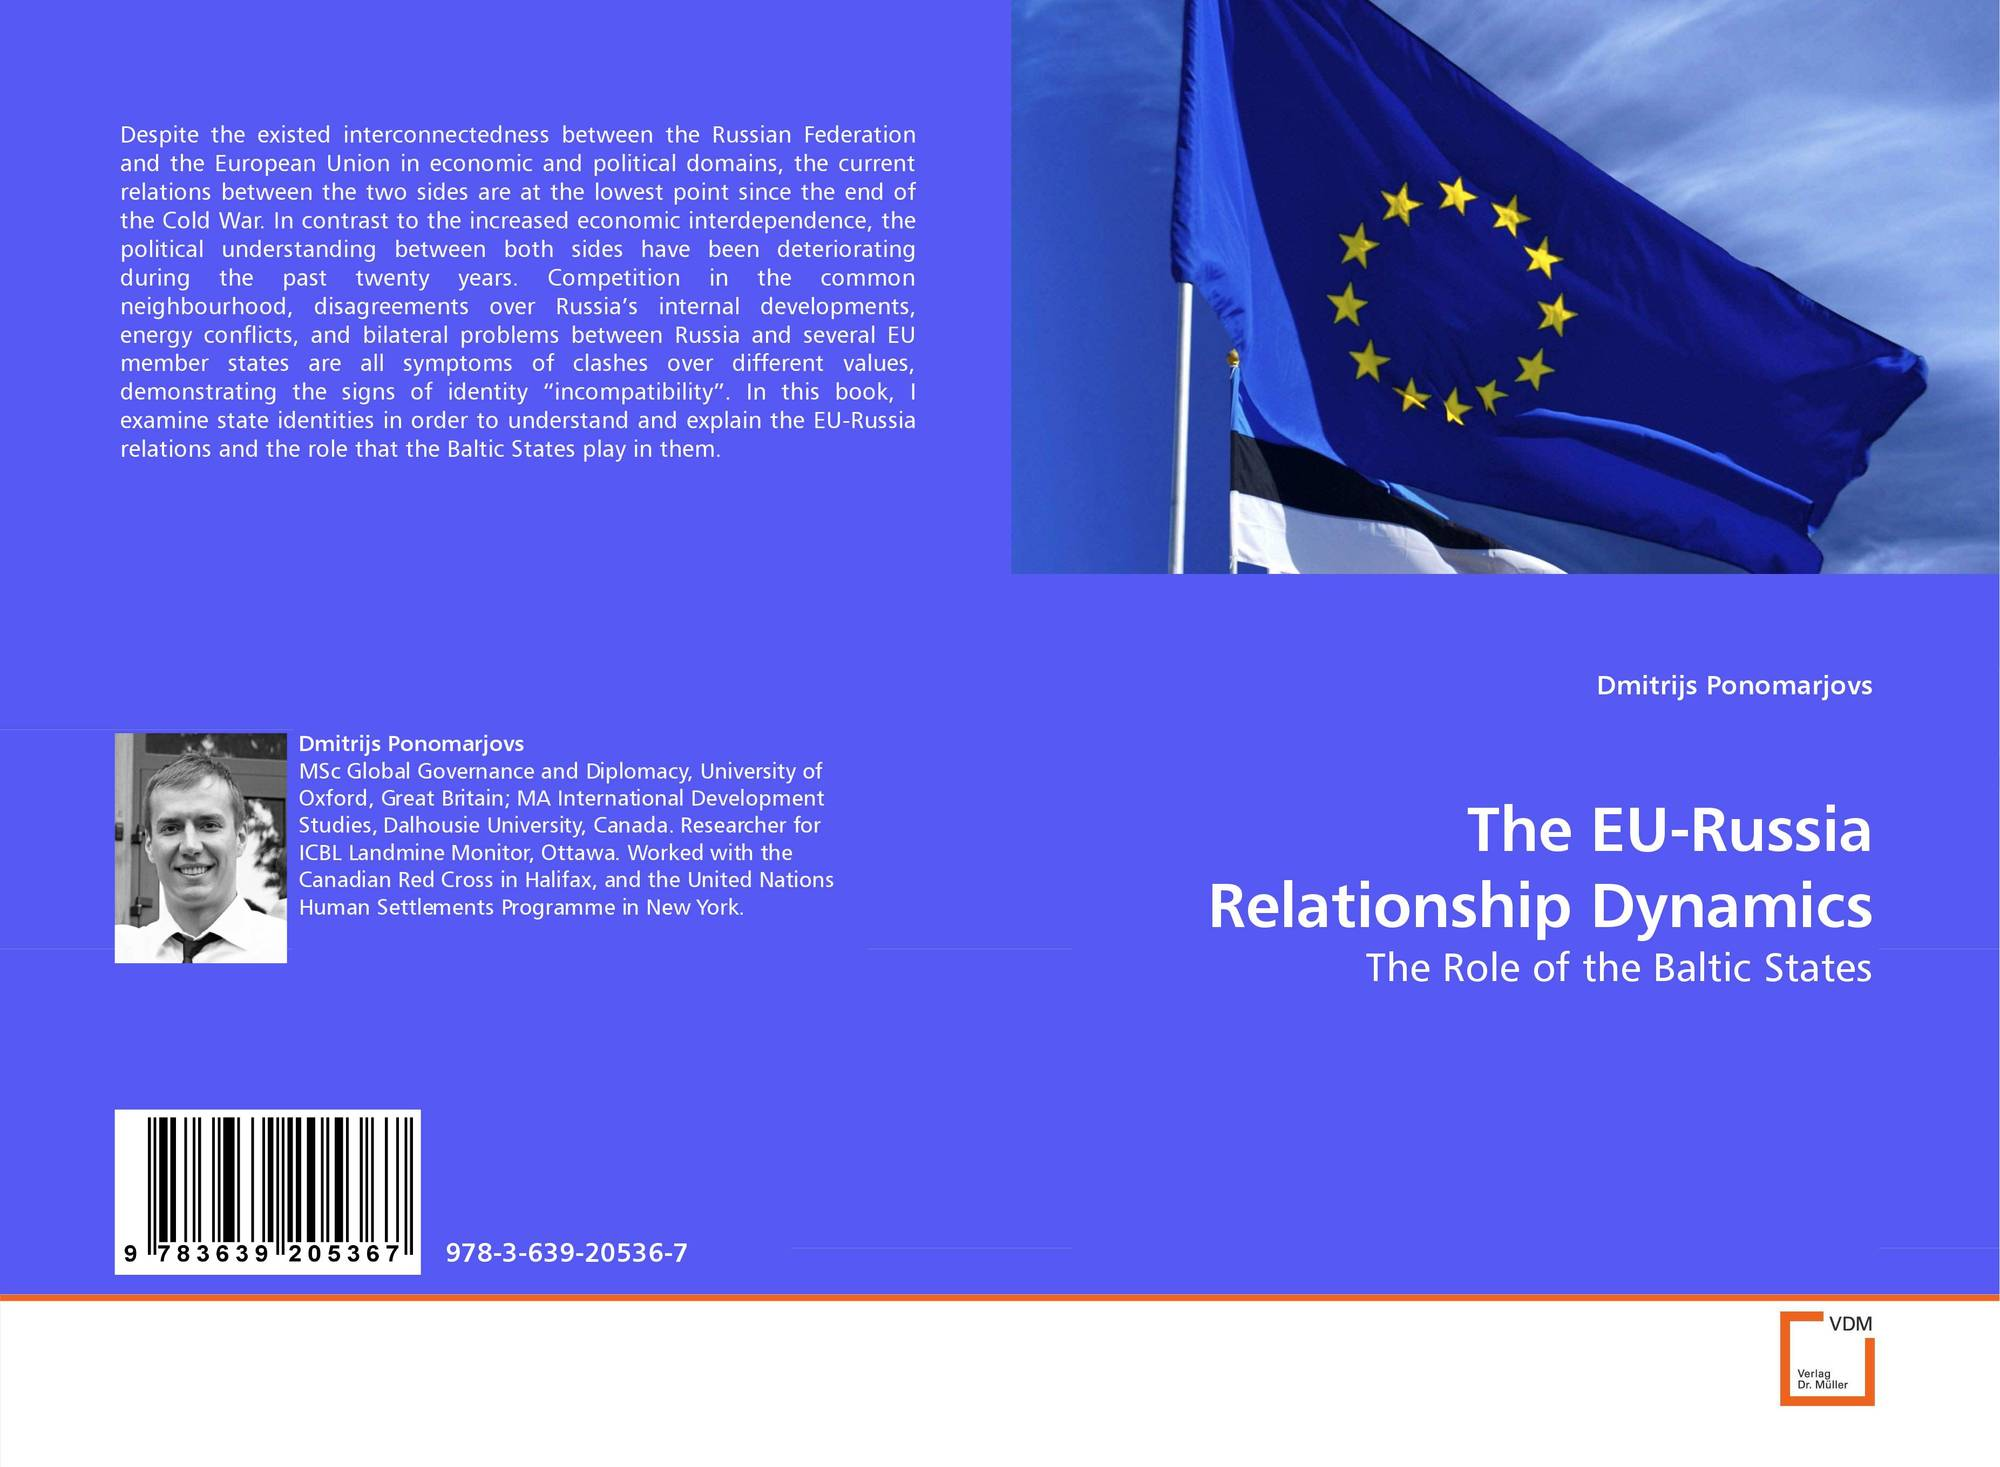 european union relations with the russian federations essay Essay twelve years ago, when turkey started its accession negotiations with the european union, a new chapter was opened in the history of turkey's turkey signed the ankara treaty in 1963 for association with the european economic community (eec) applied for full membership of the eec.